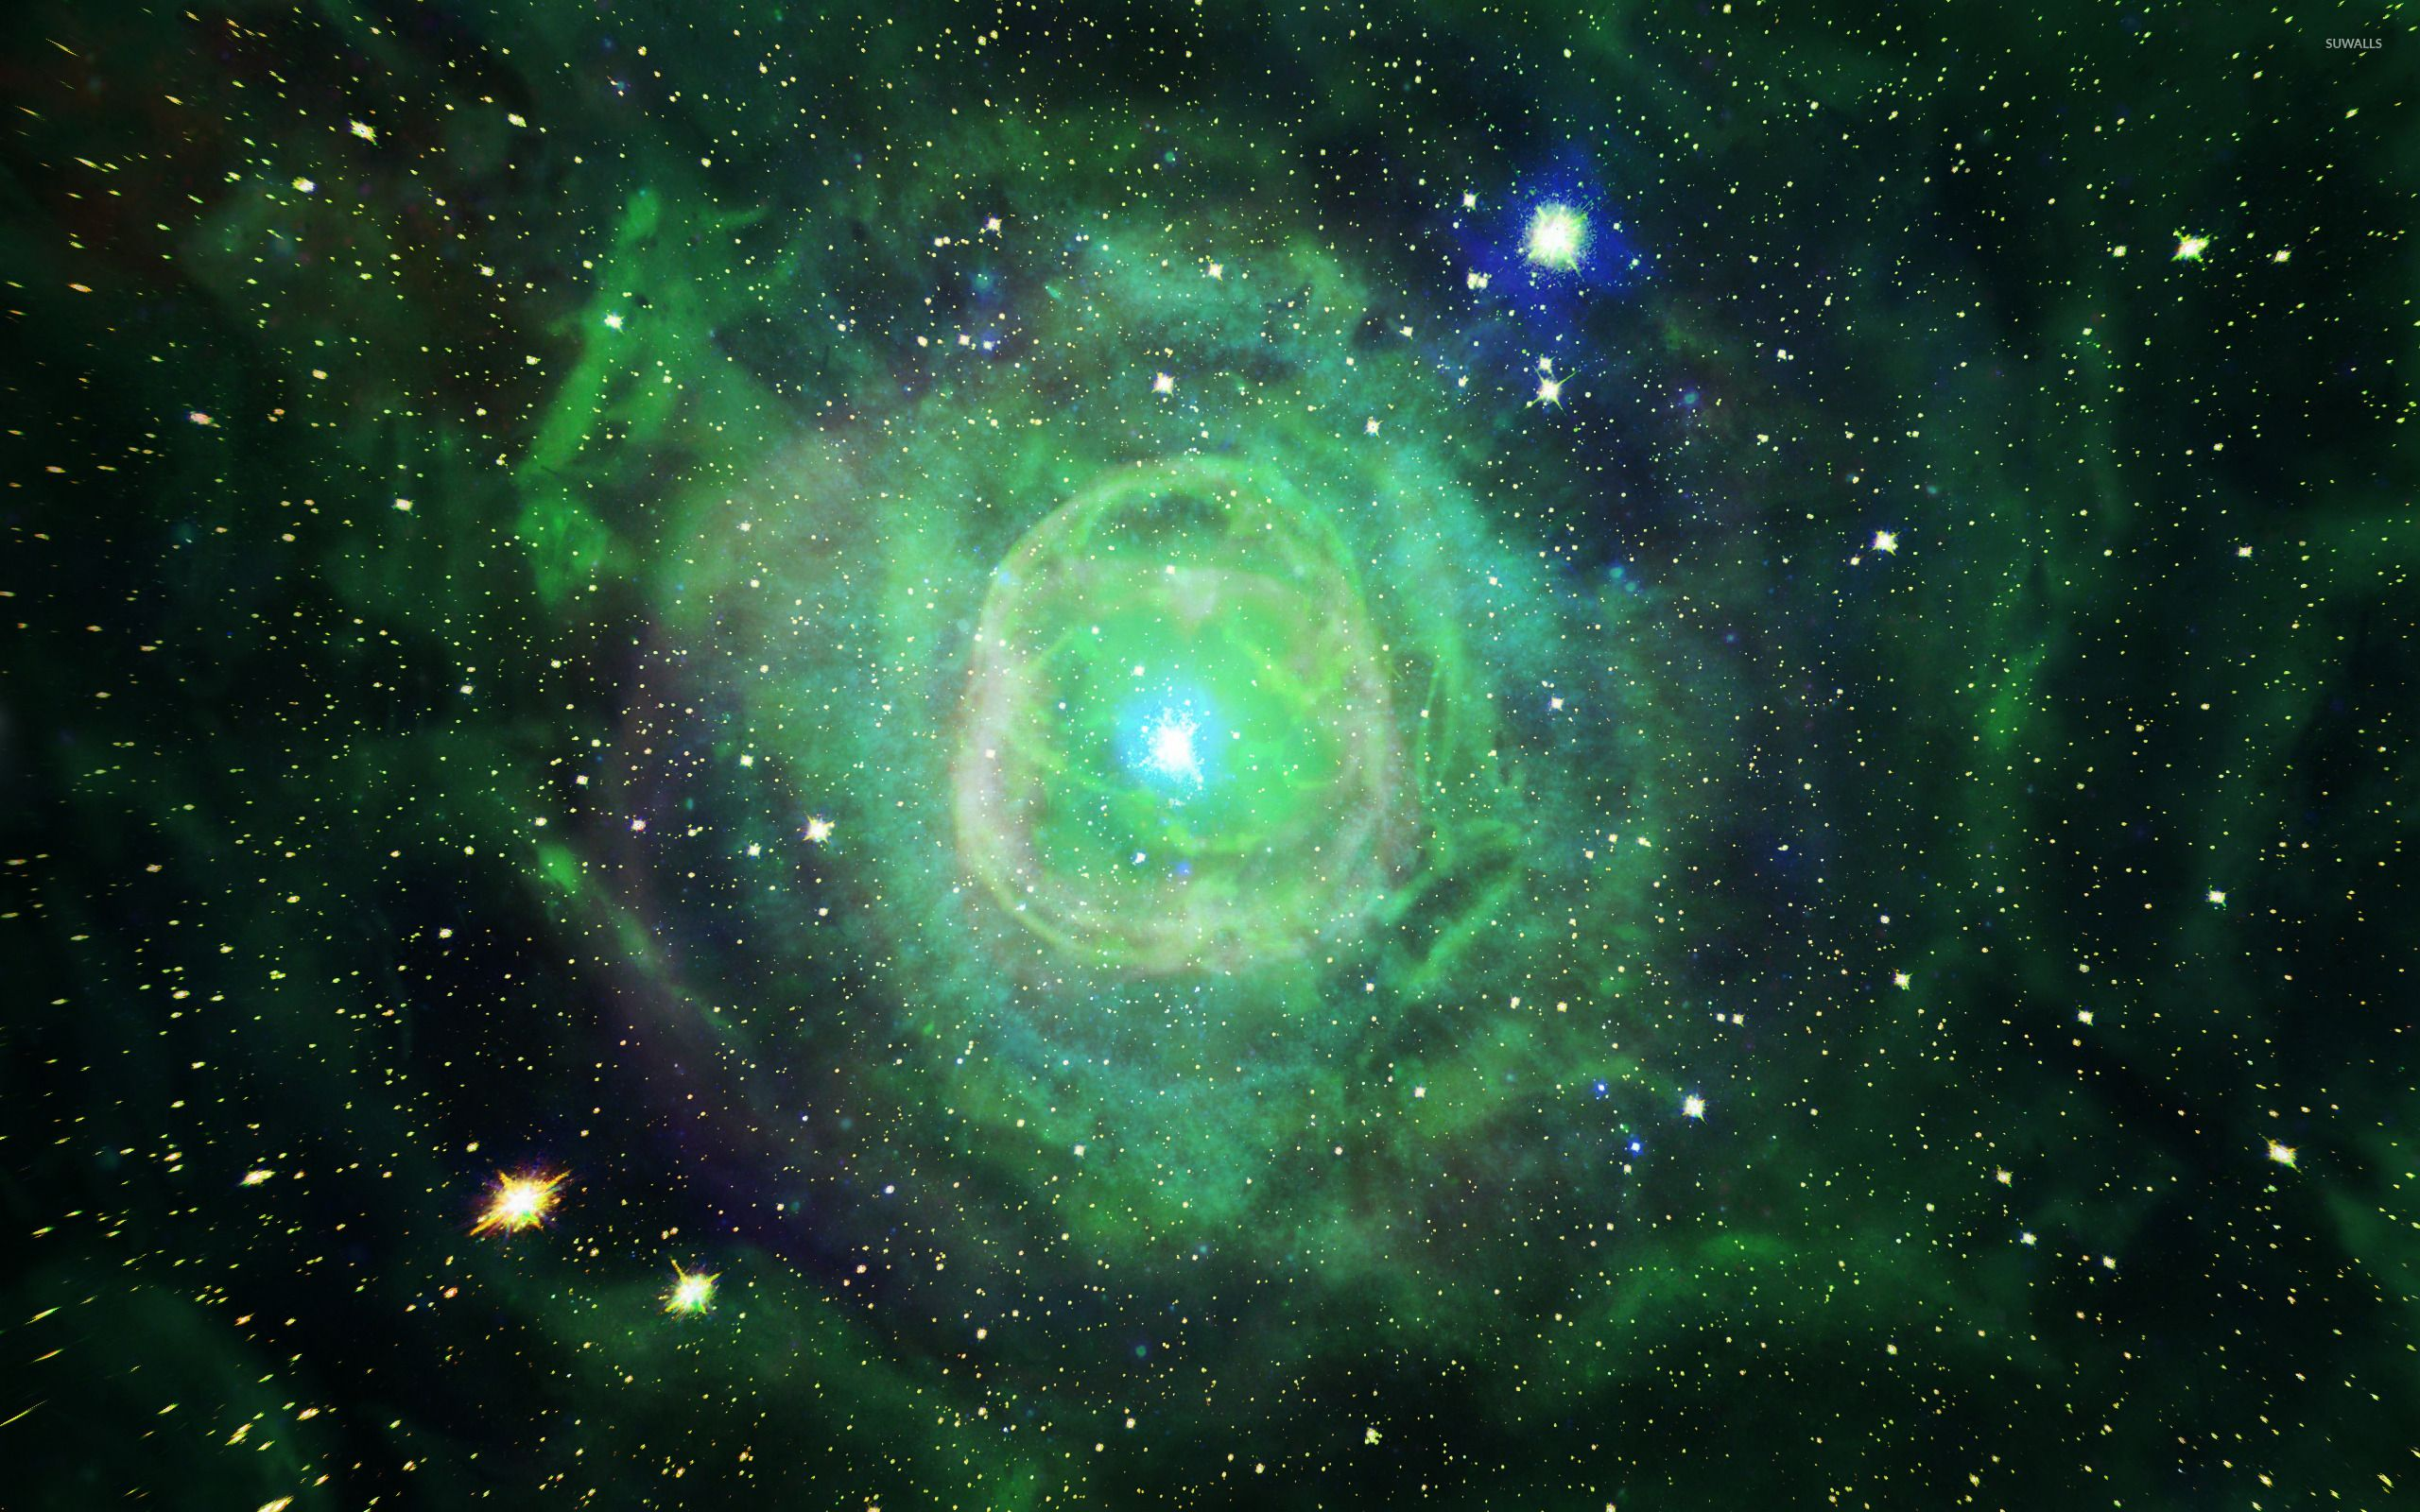 Green Nebula Wallpapers Top Free Green Nebula Backgrounds Wallpaperaccess